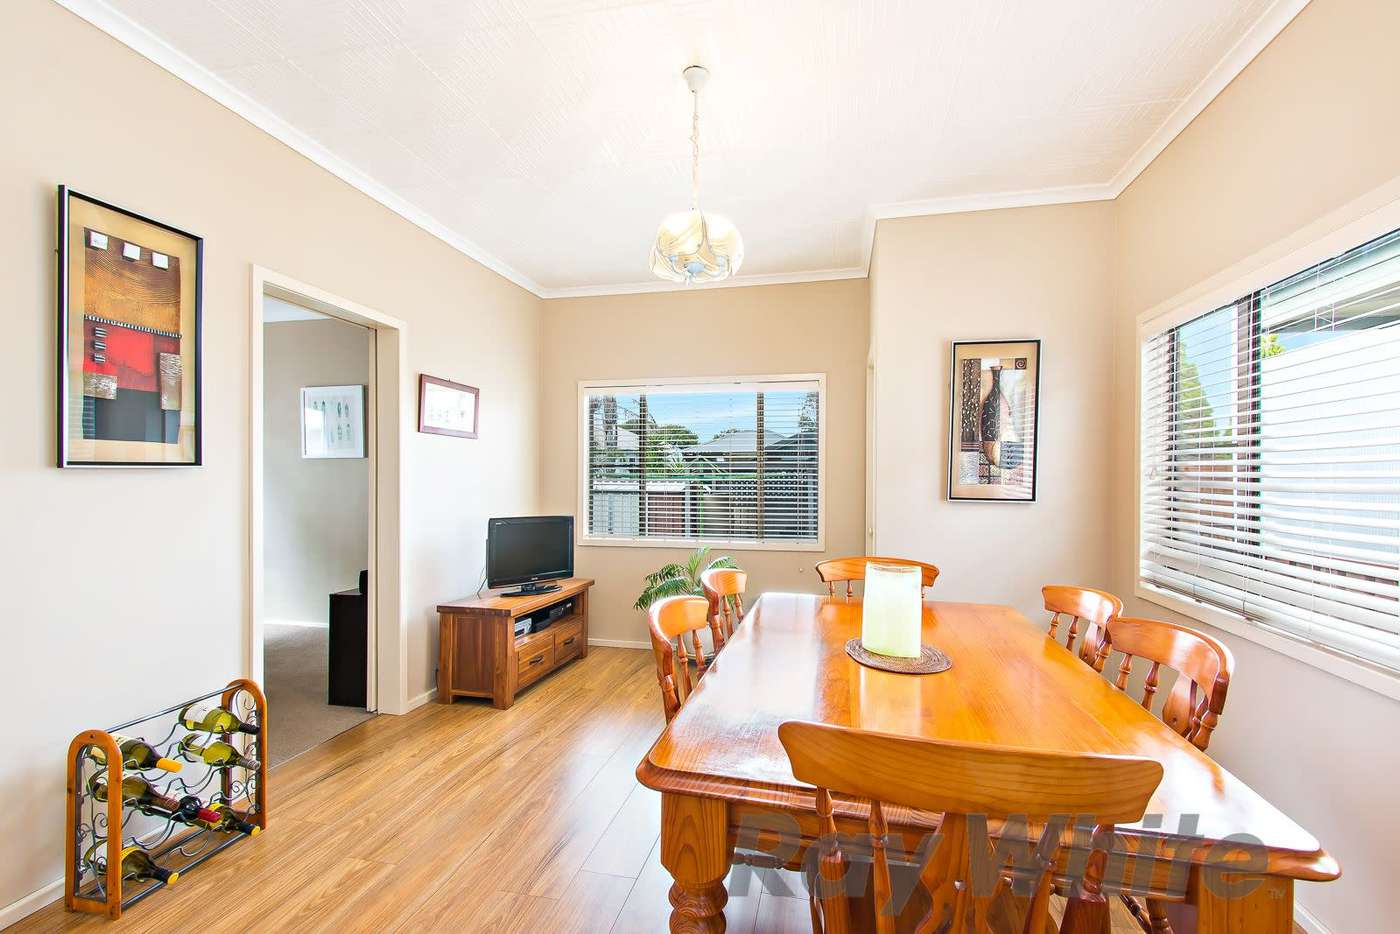 Sixth view of Homely house listing, 15A Edden Street, Adamstown NSW 2289